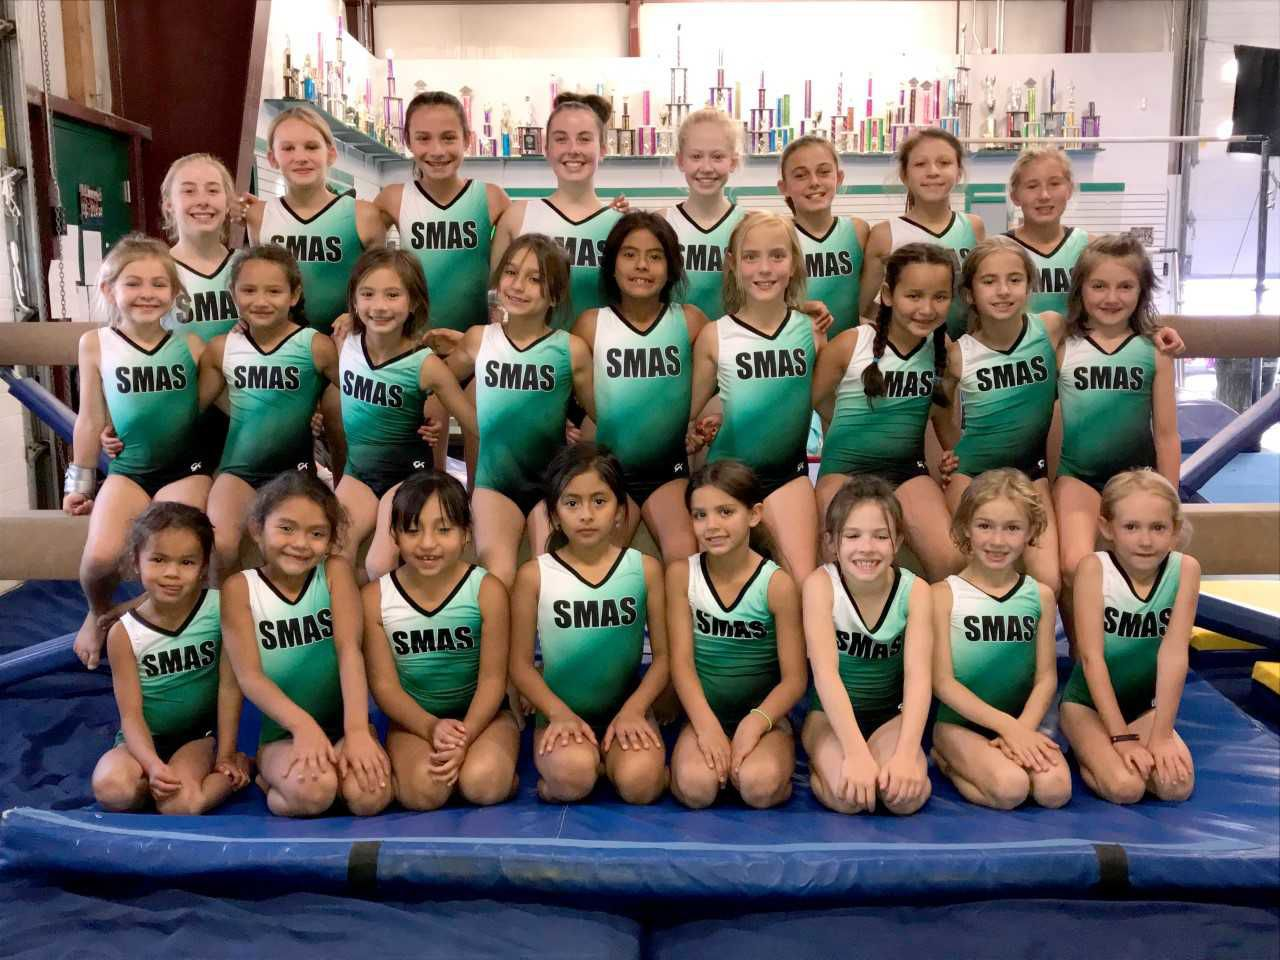 Christmas Classic in Hailey a highlight for gymnasts | Local